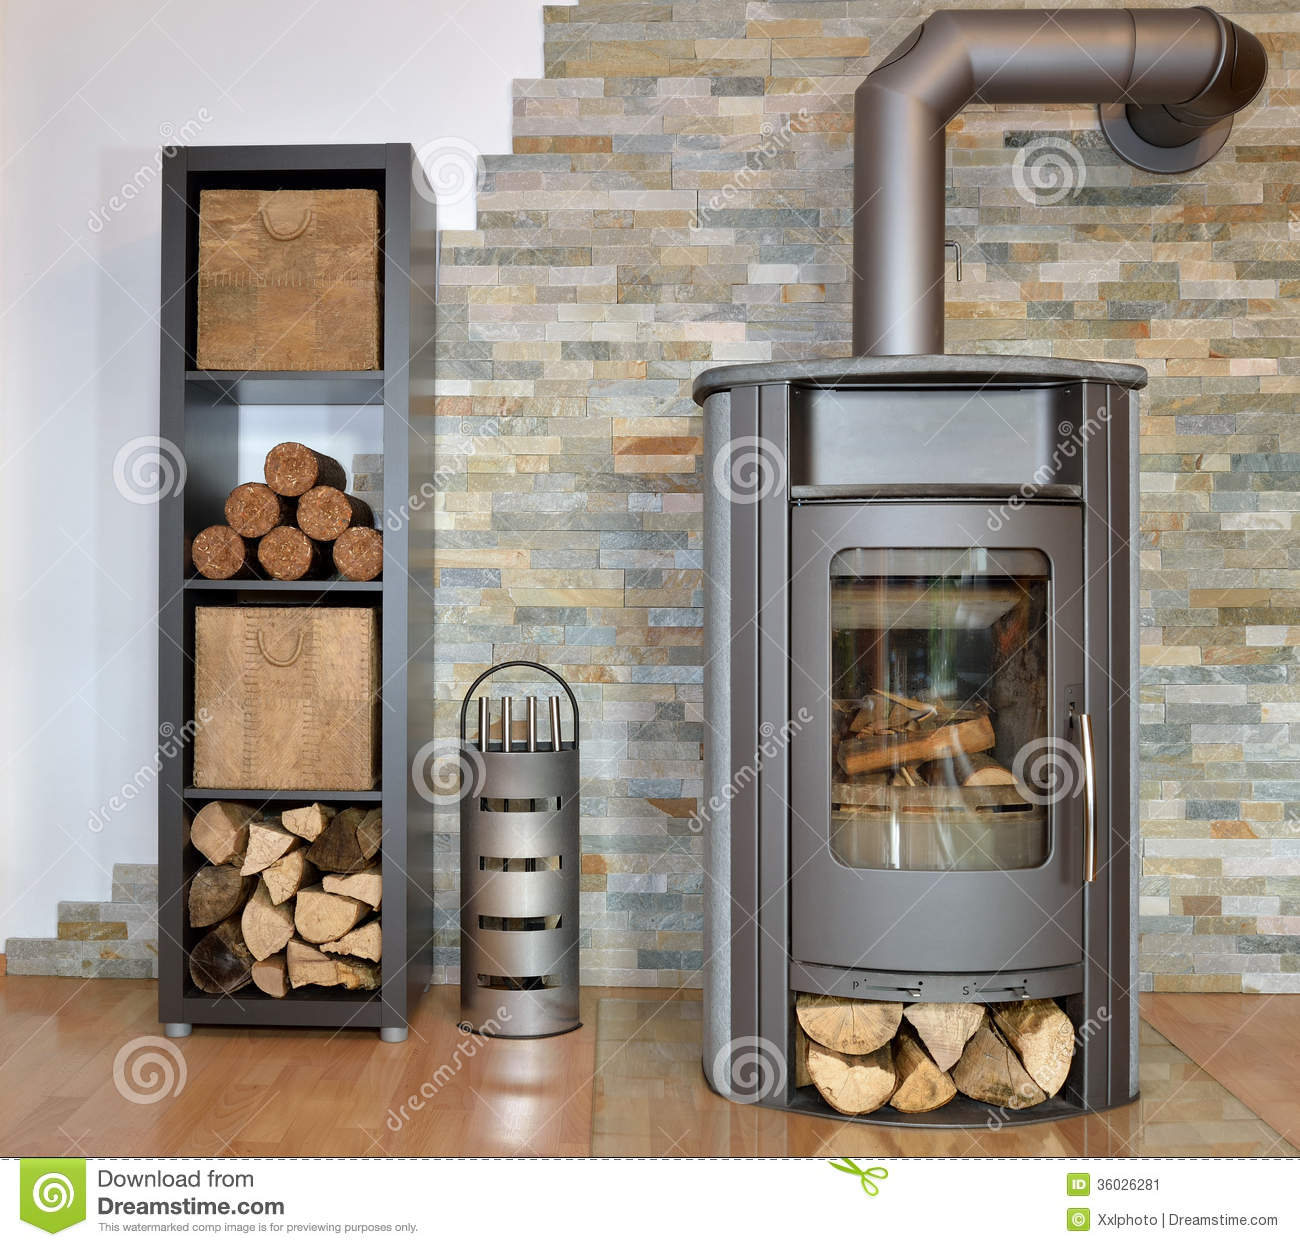 Wood fired stove stock image